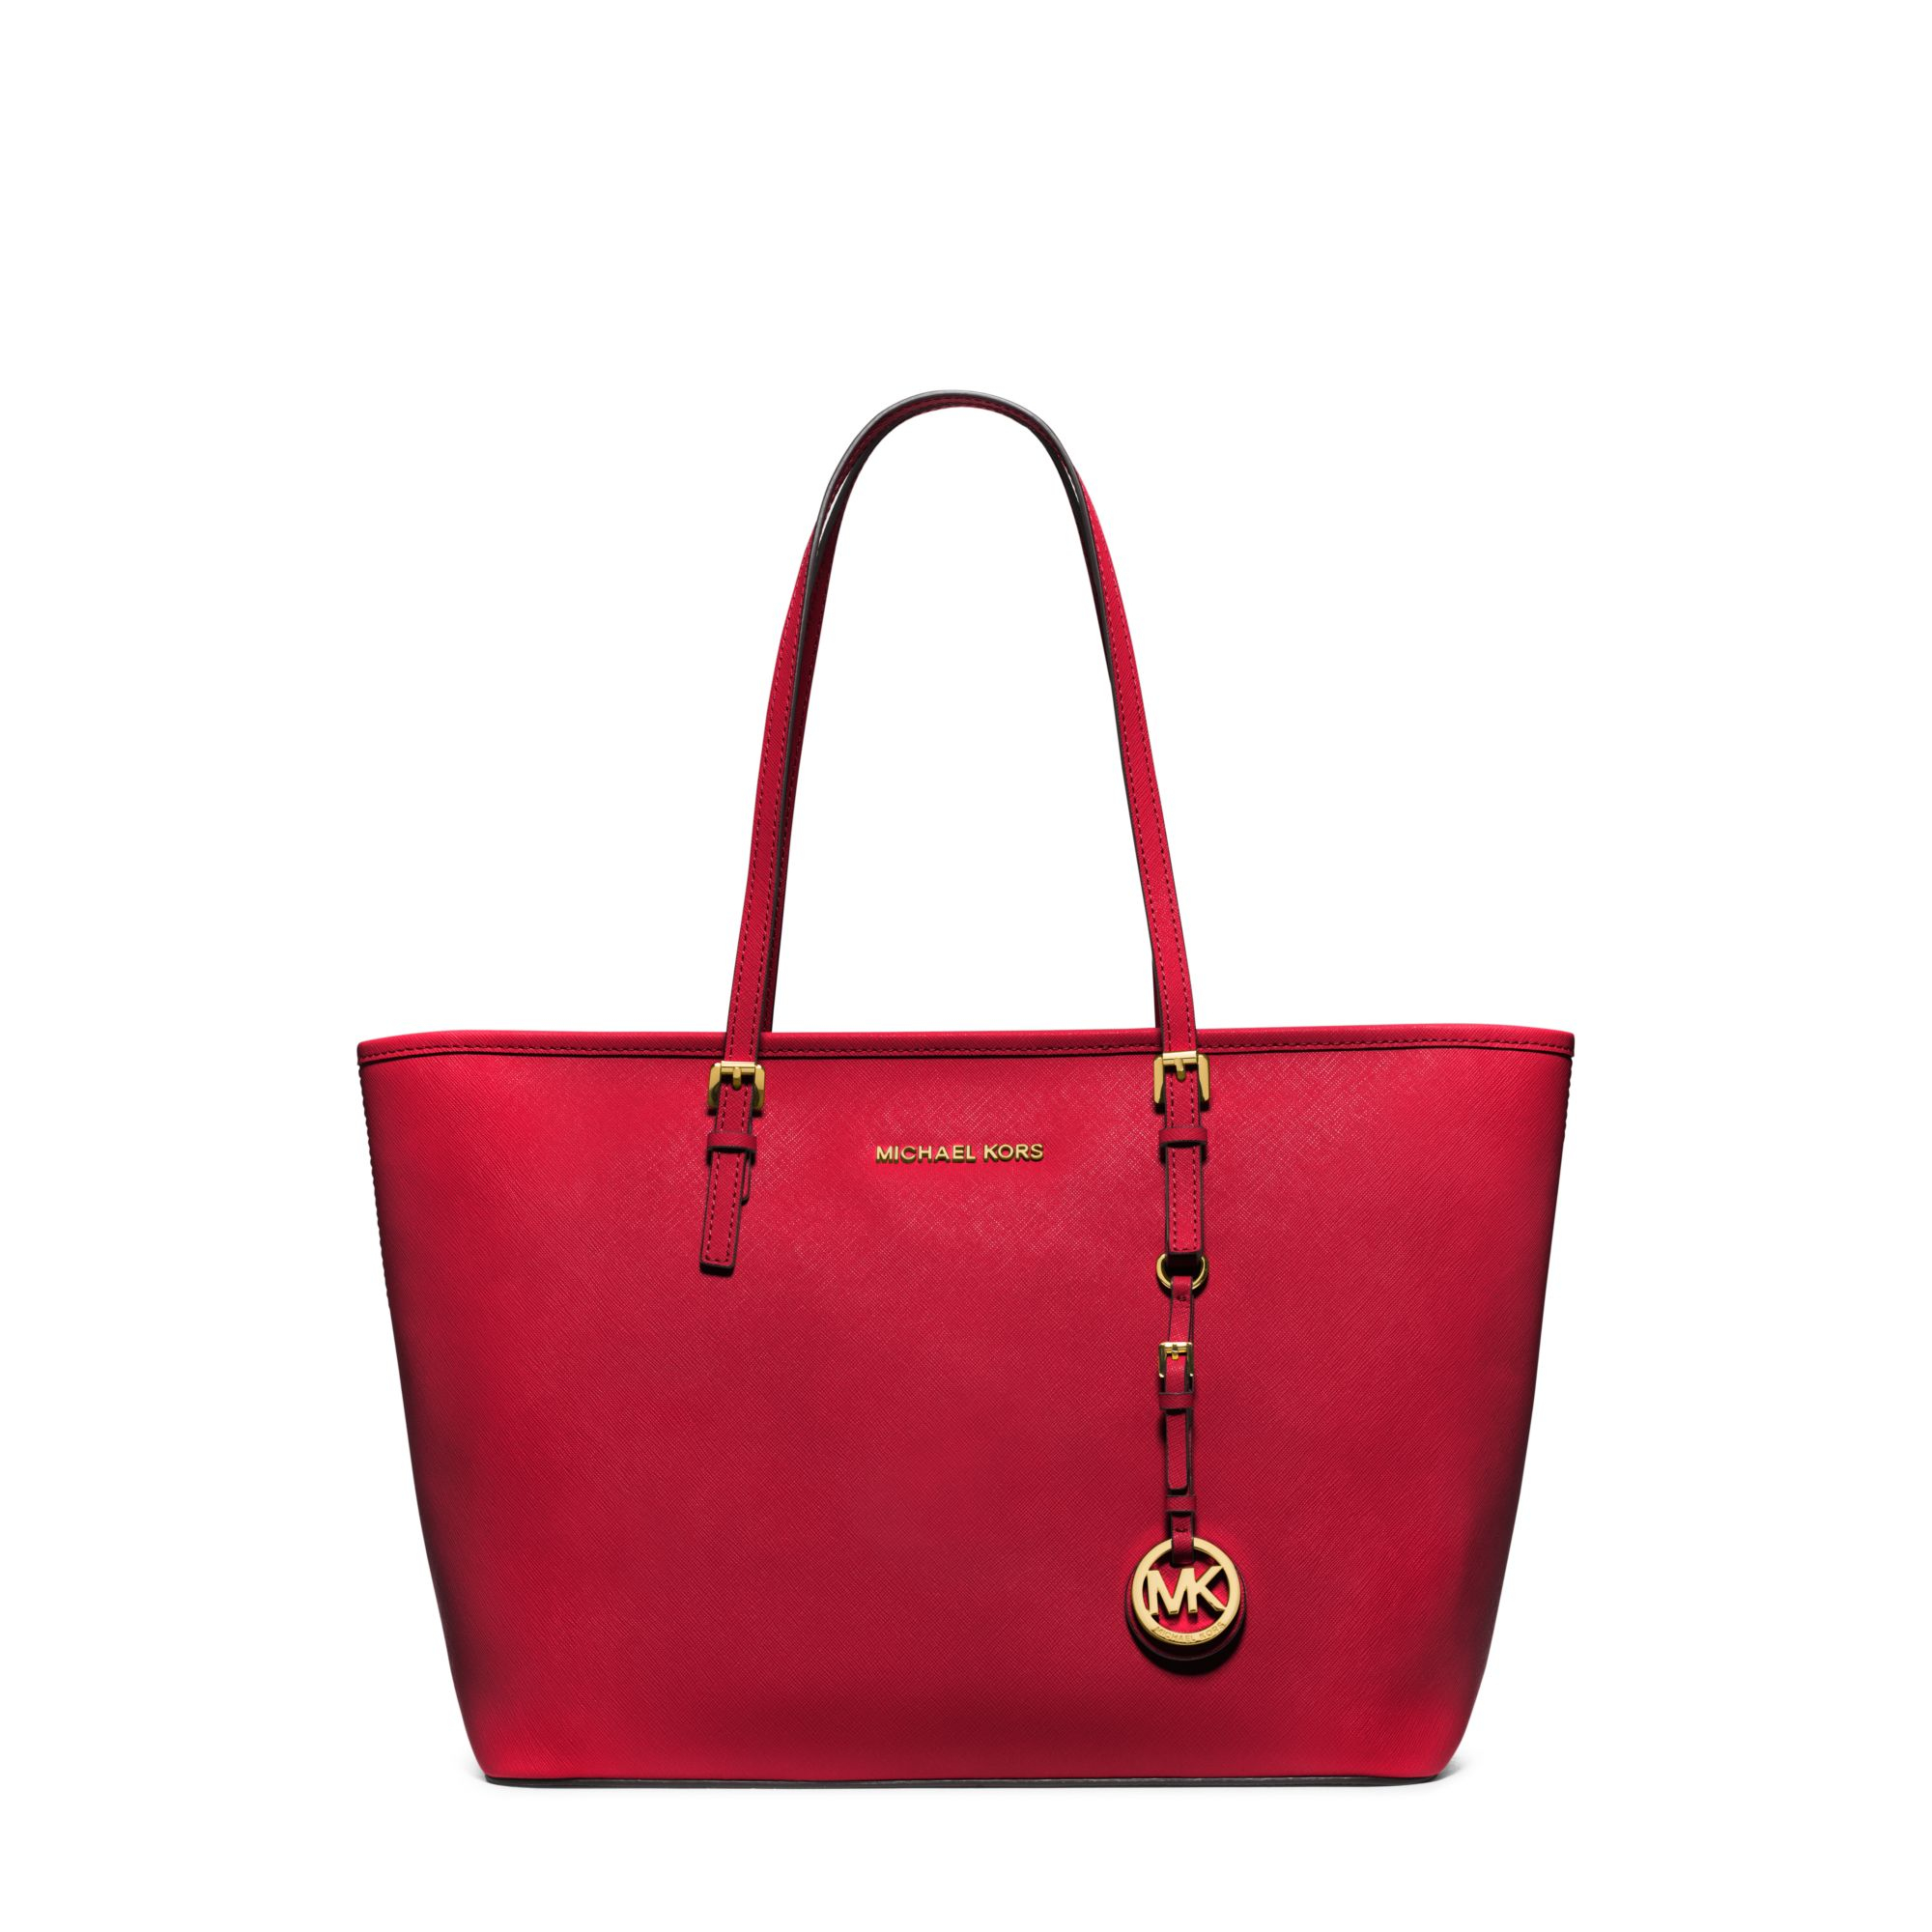 michael-kors-chili-jet-set-travel-saffiano-leather-top-zip-tote-red-product-2-396138232-normal.jpeg